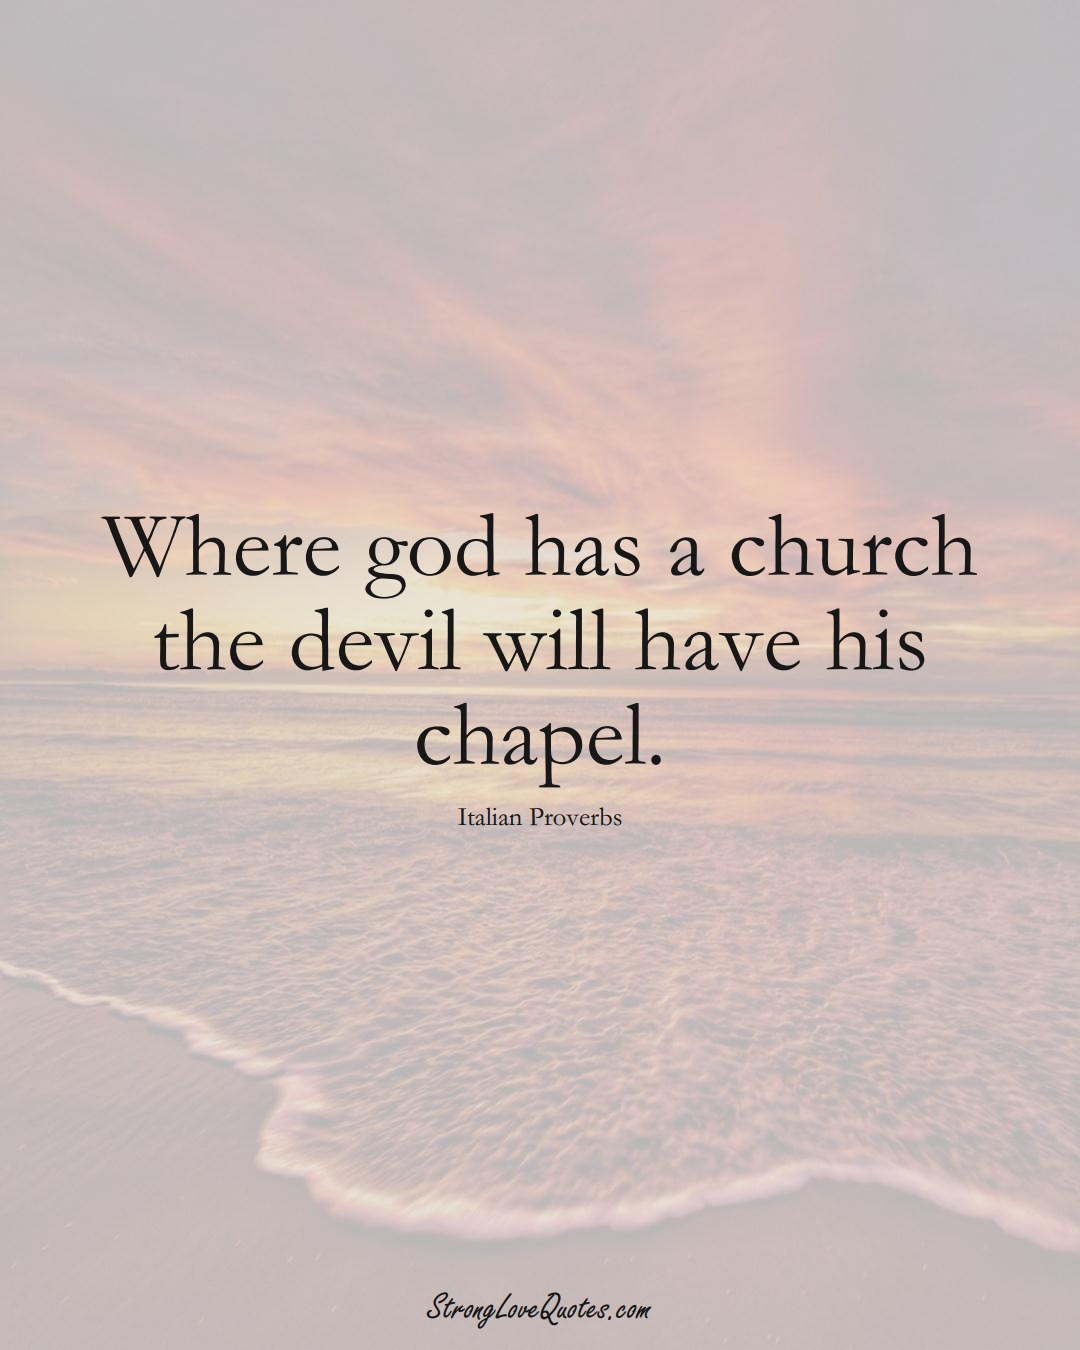 Where god has a church the devil will have his chapel. (Italian Sayings);  #EuropeanSayings